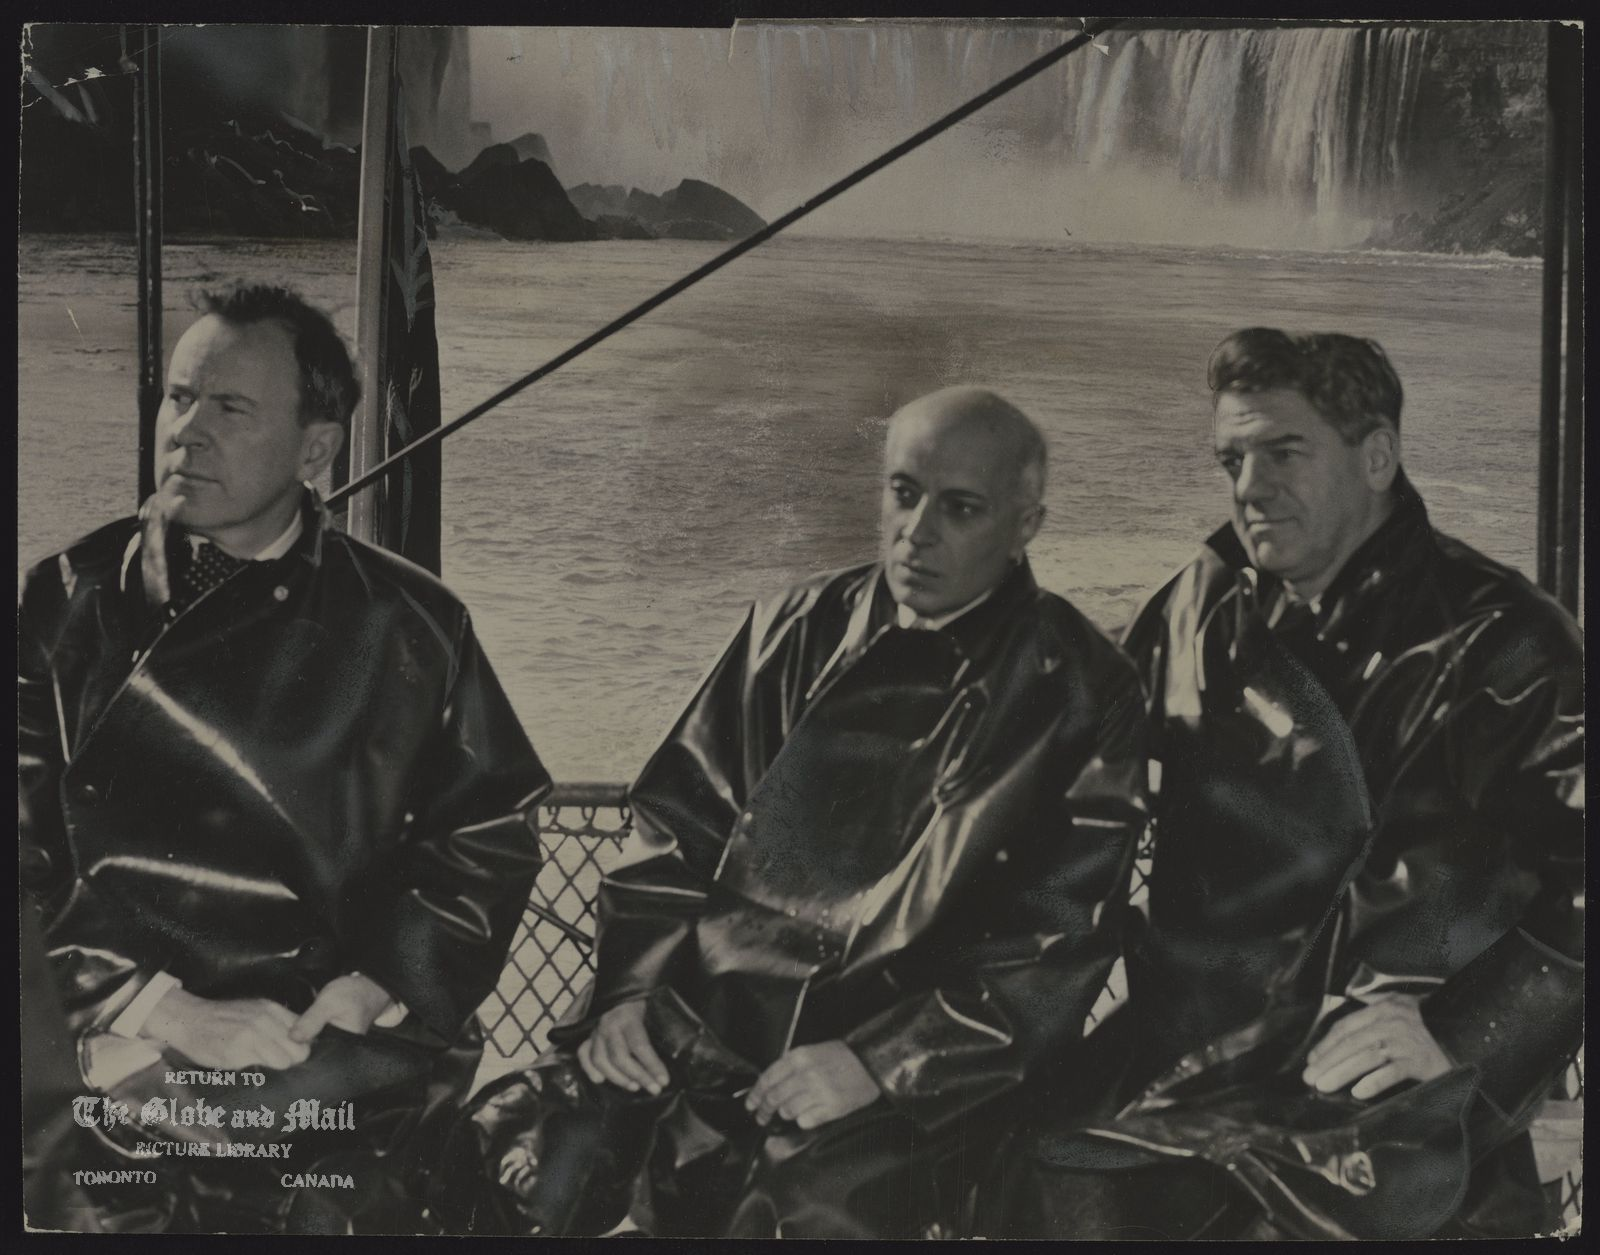 The notes transcribed from the back of this photograph are as follows: External Affairs Minister Lester Pearson, Pandit Nehru, and Hydro Commission Chairman Robert Saunders. They talked aboard the Maid of the Mist with the falls roaring behind them.